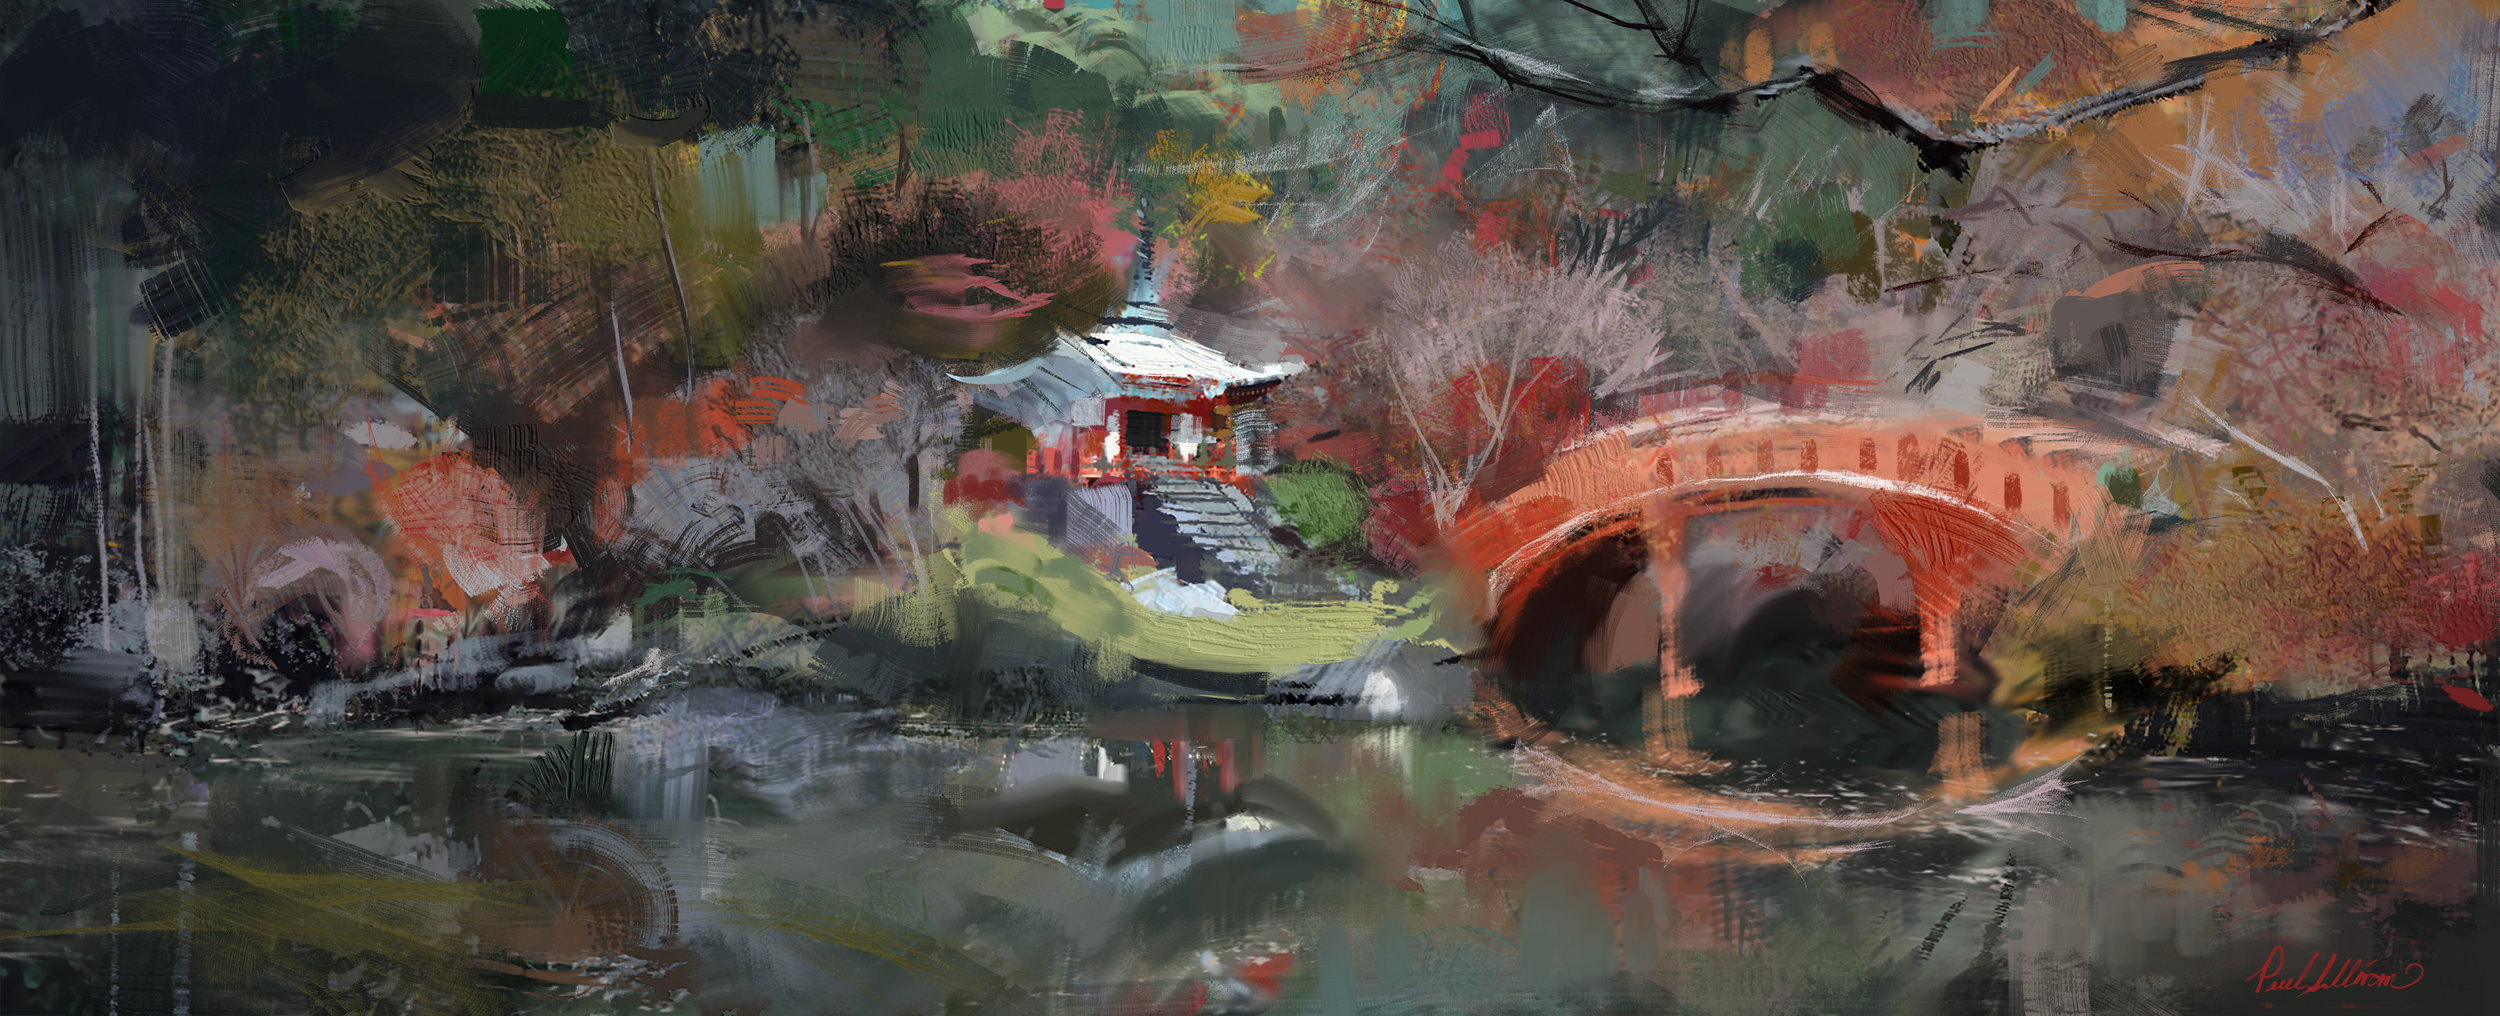 Study of Japan playin with edges